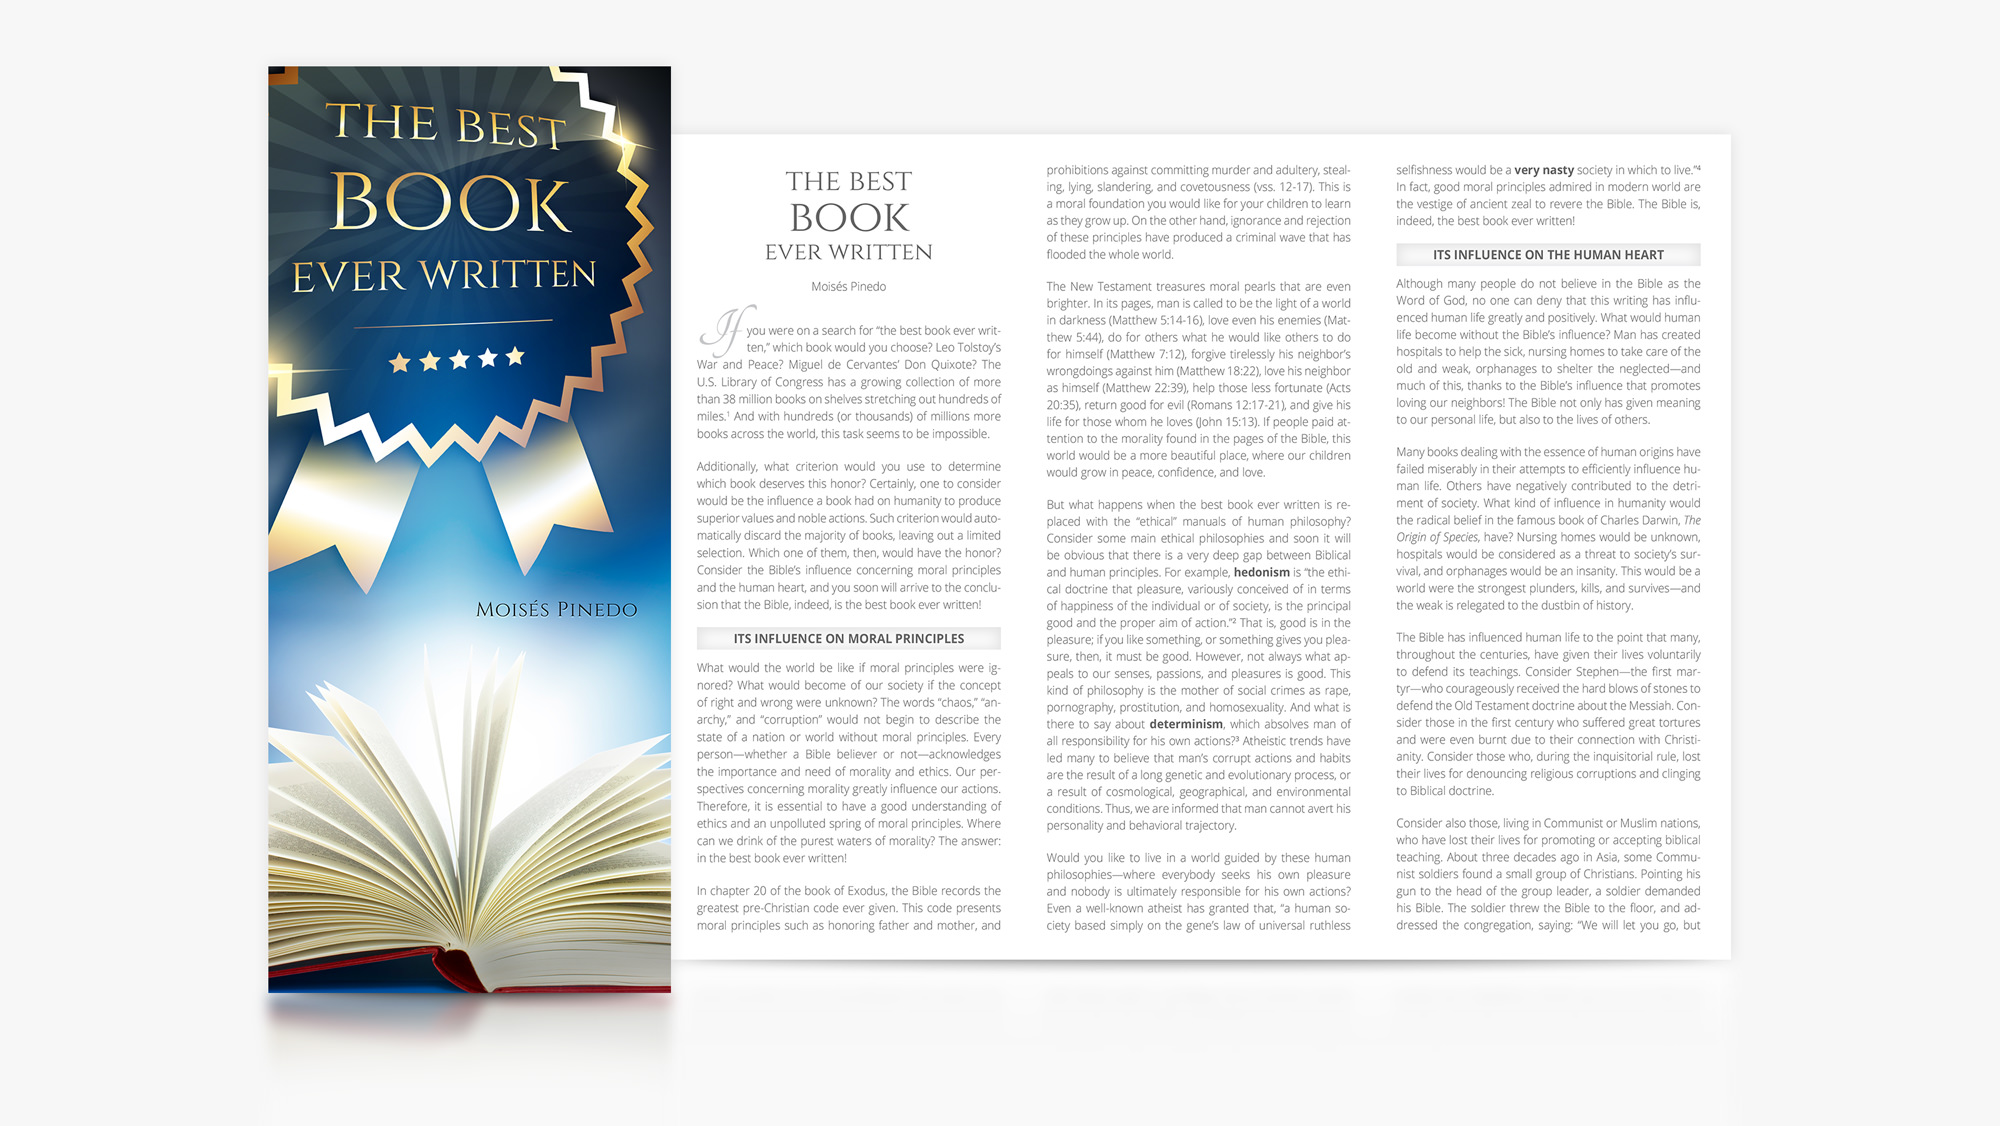 The Best Book Ever Written — EB Global: Enfoque Bíblico